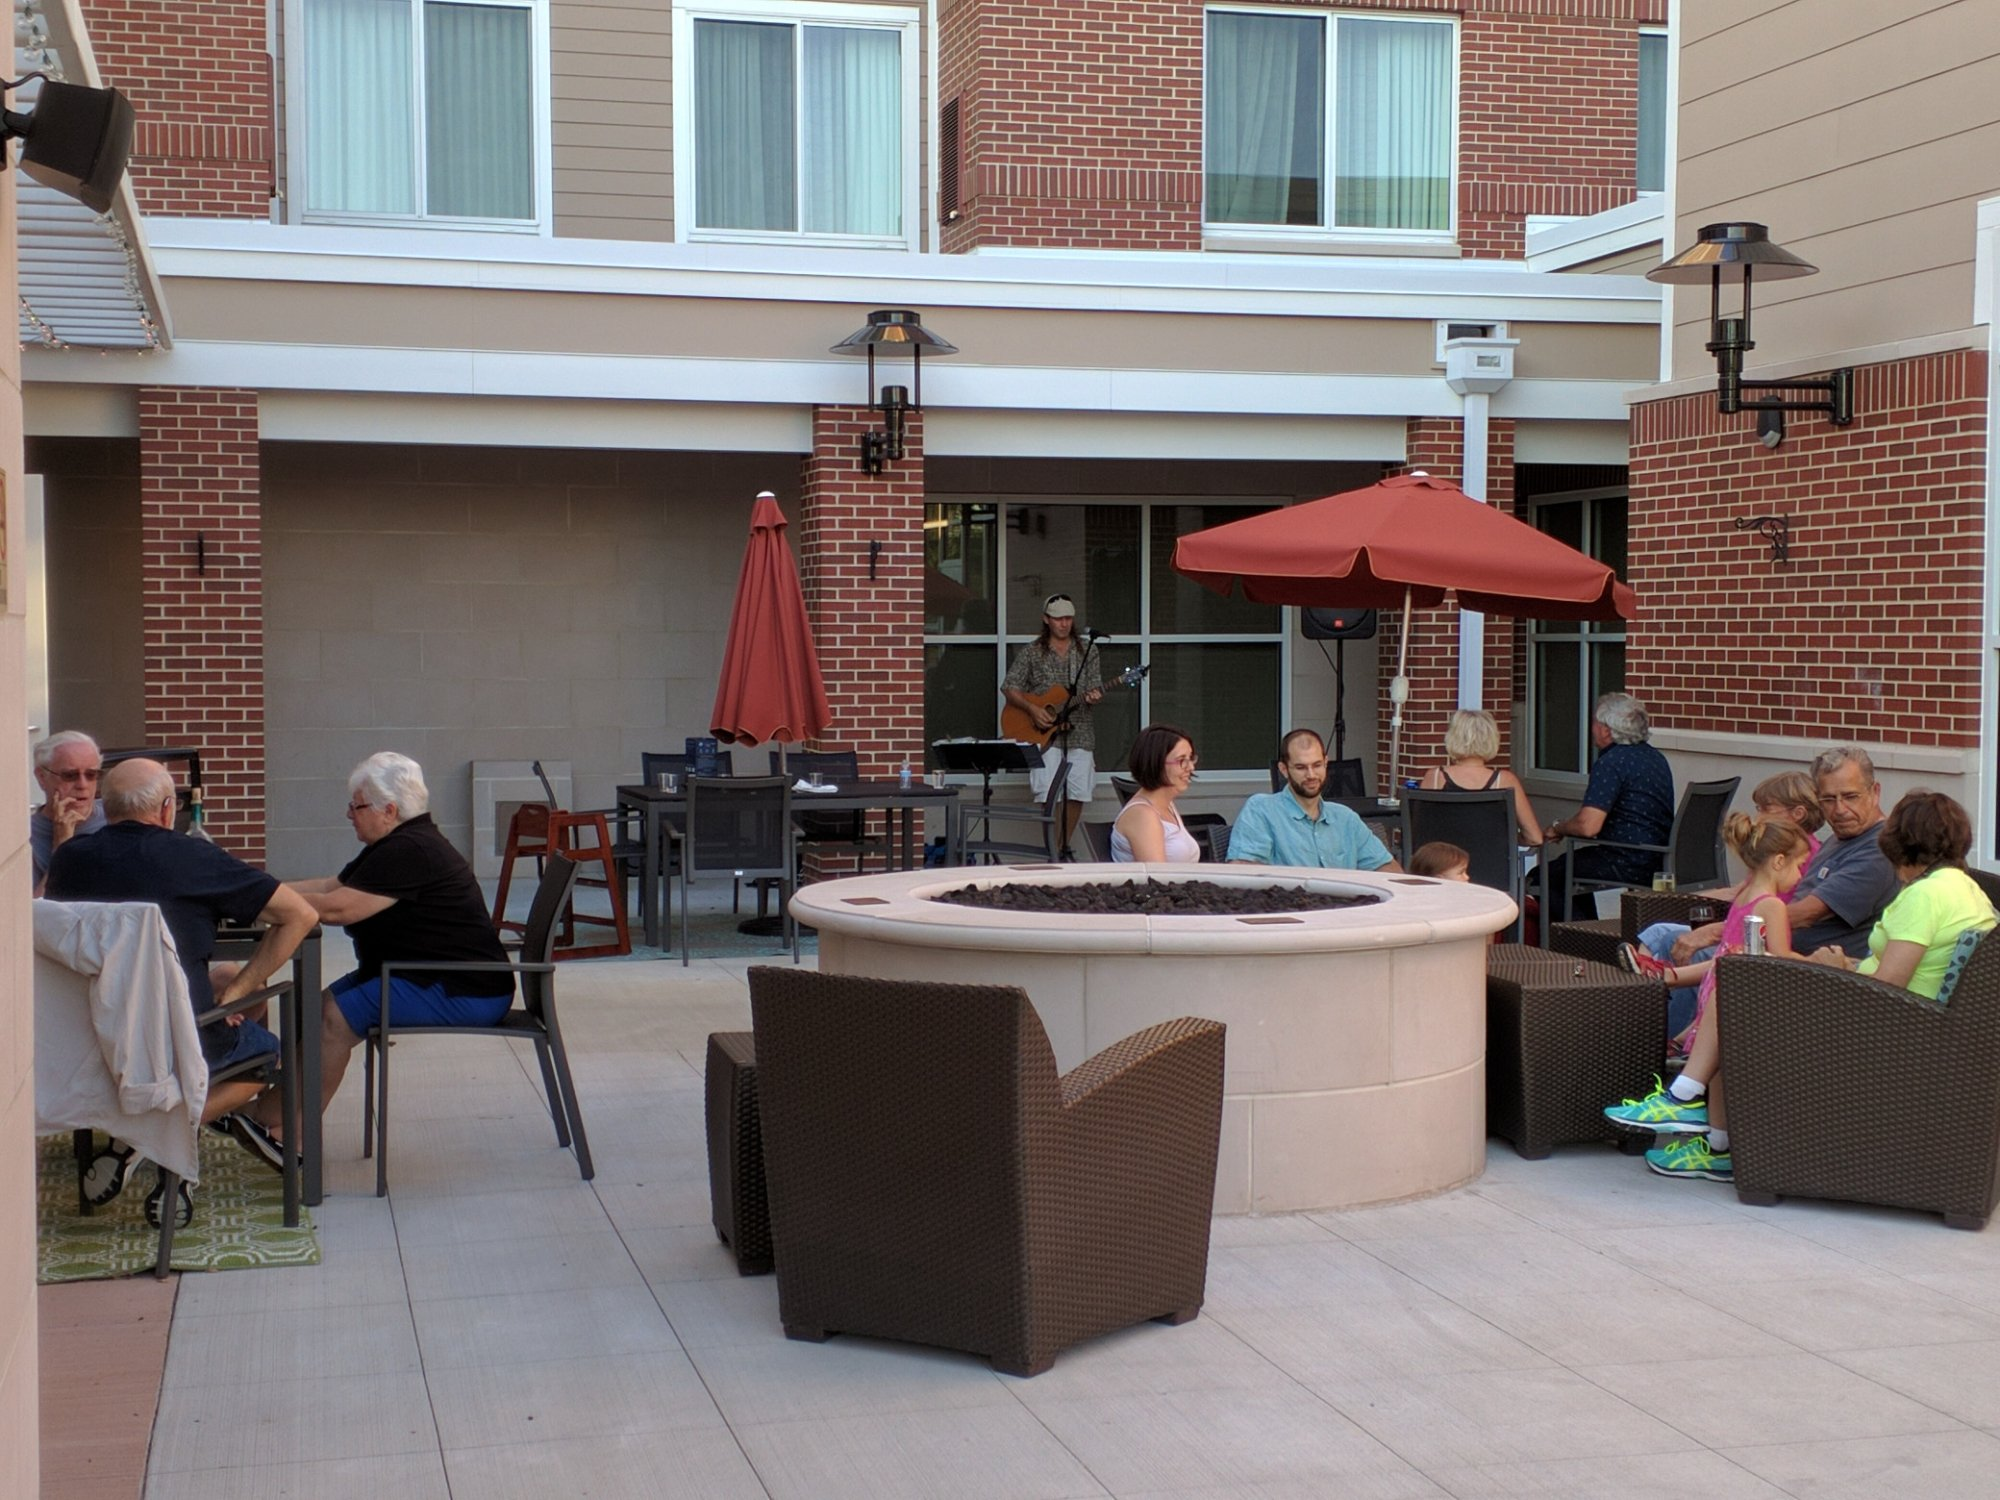 patio-with-live-music.jpg